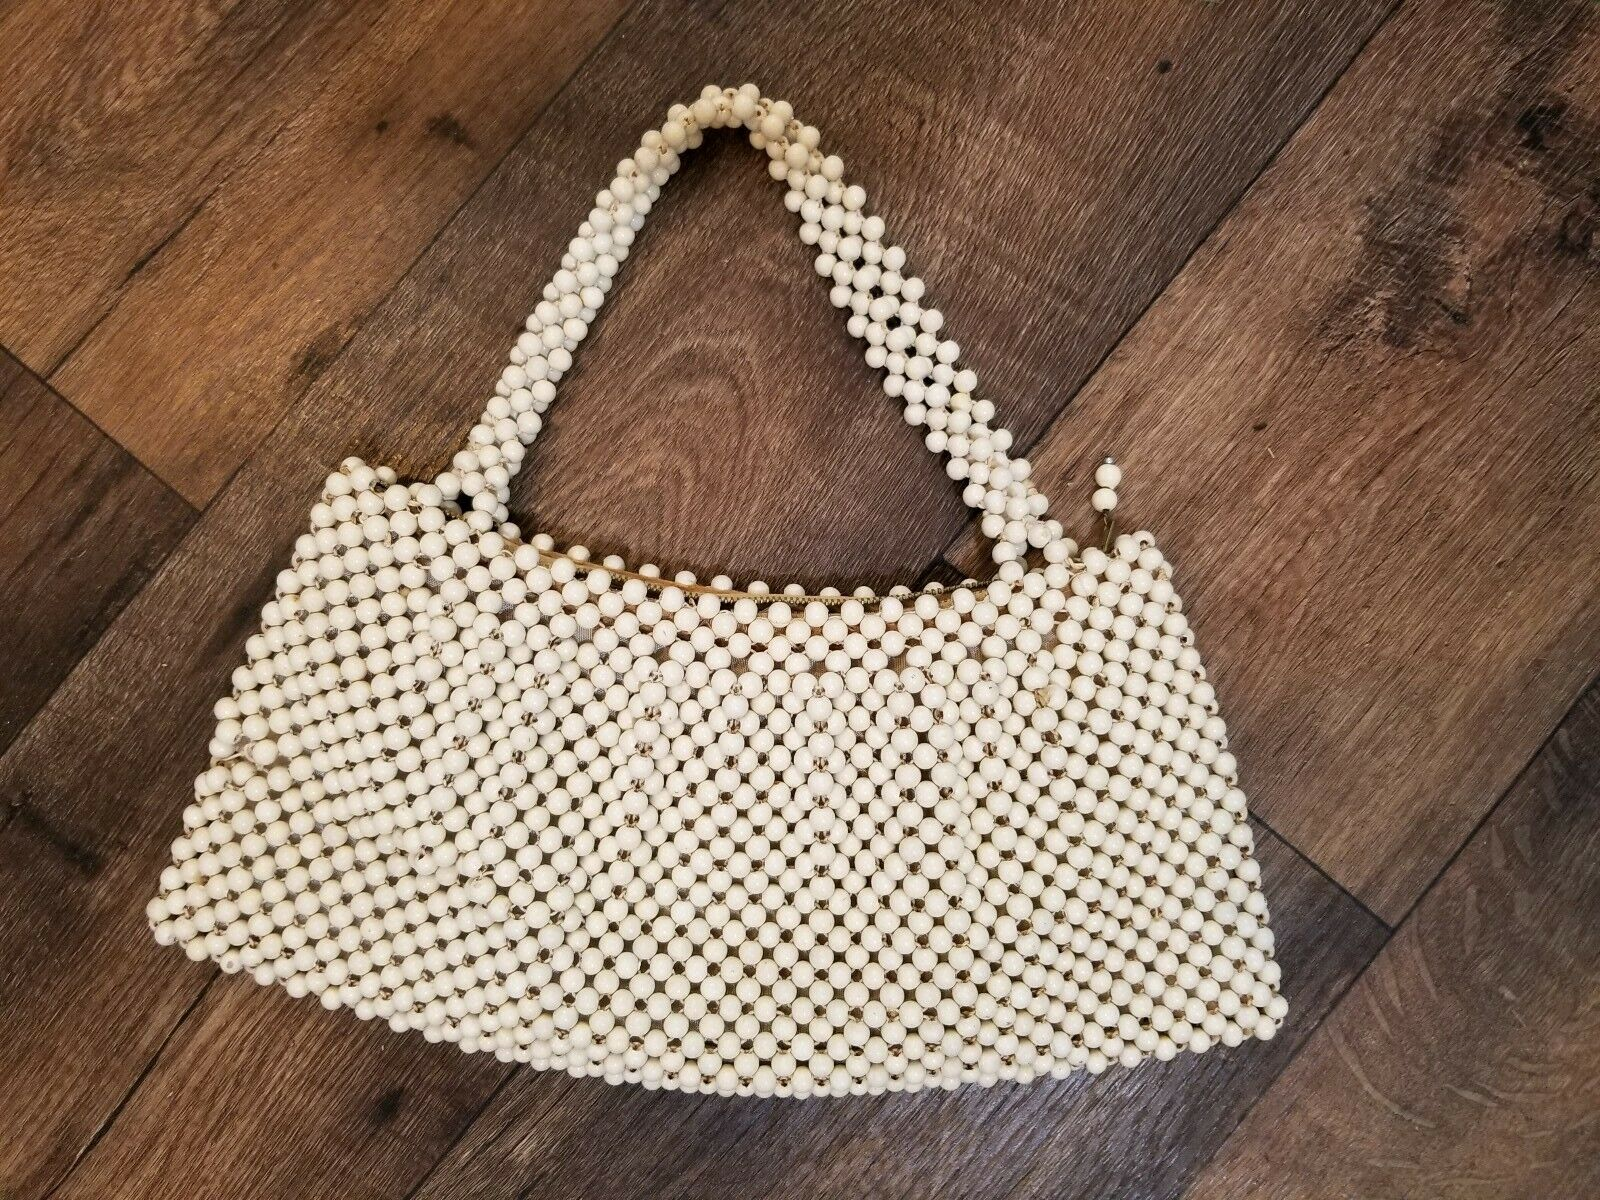 Vintage 50s-60s White Beaded Handbag Purse Made in Japan for May D & F CO